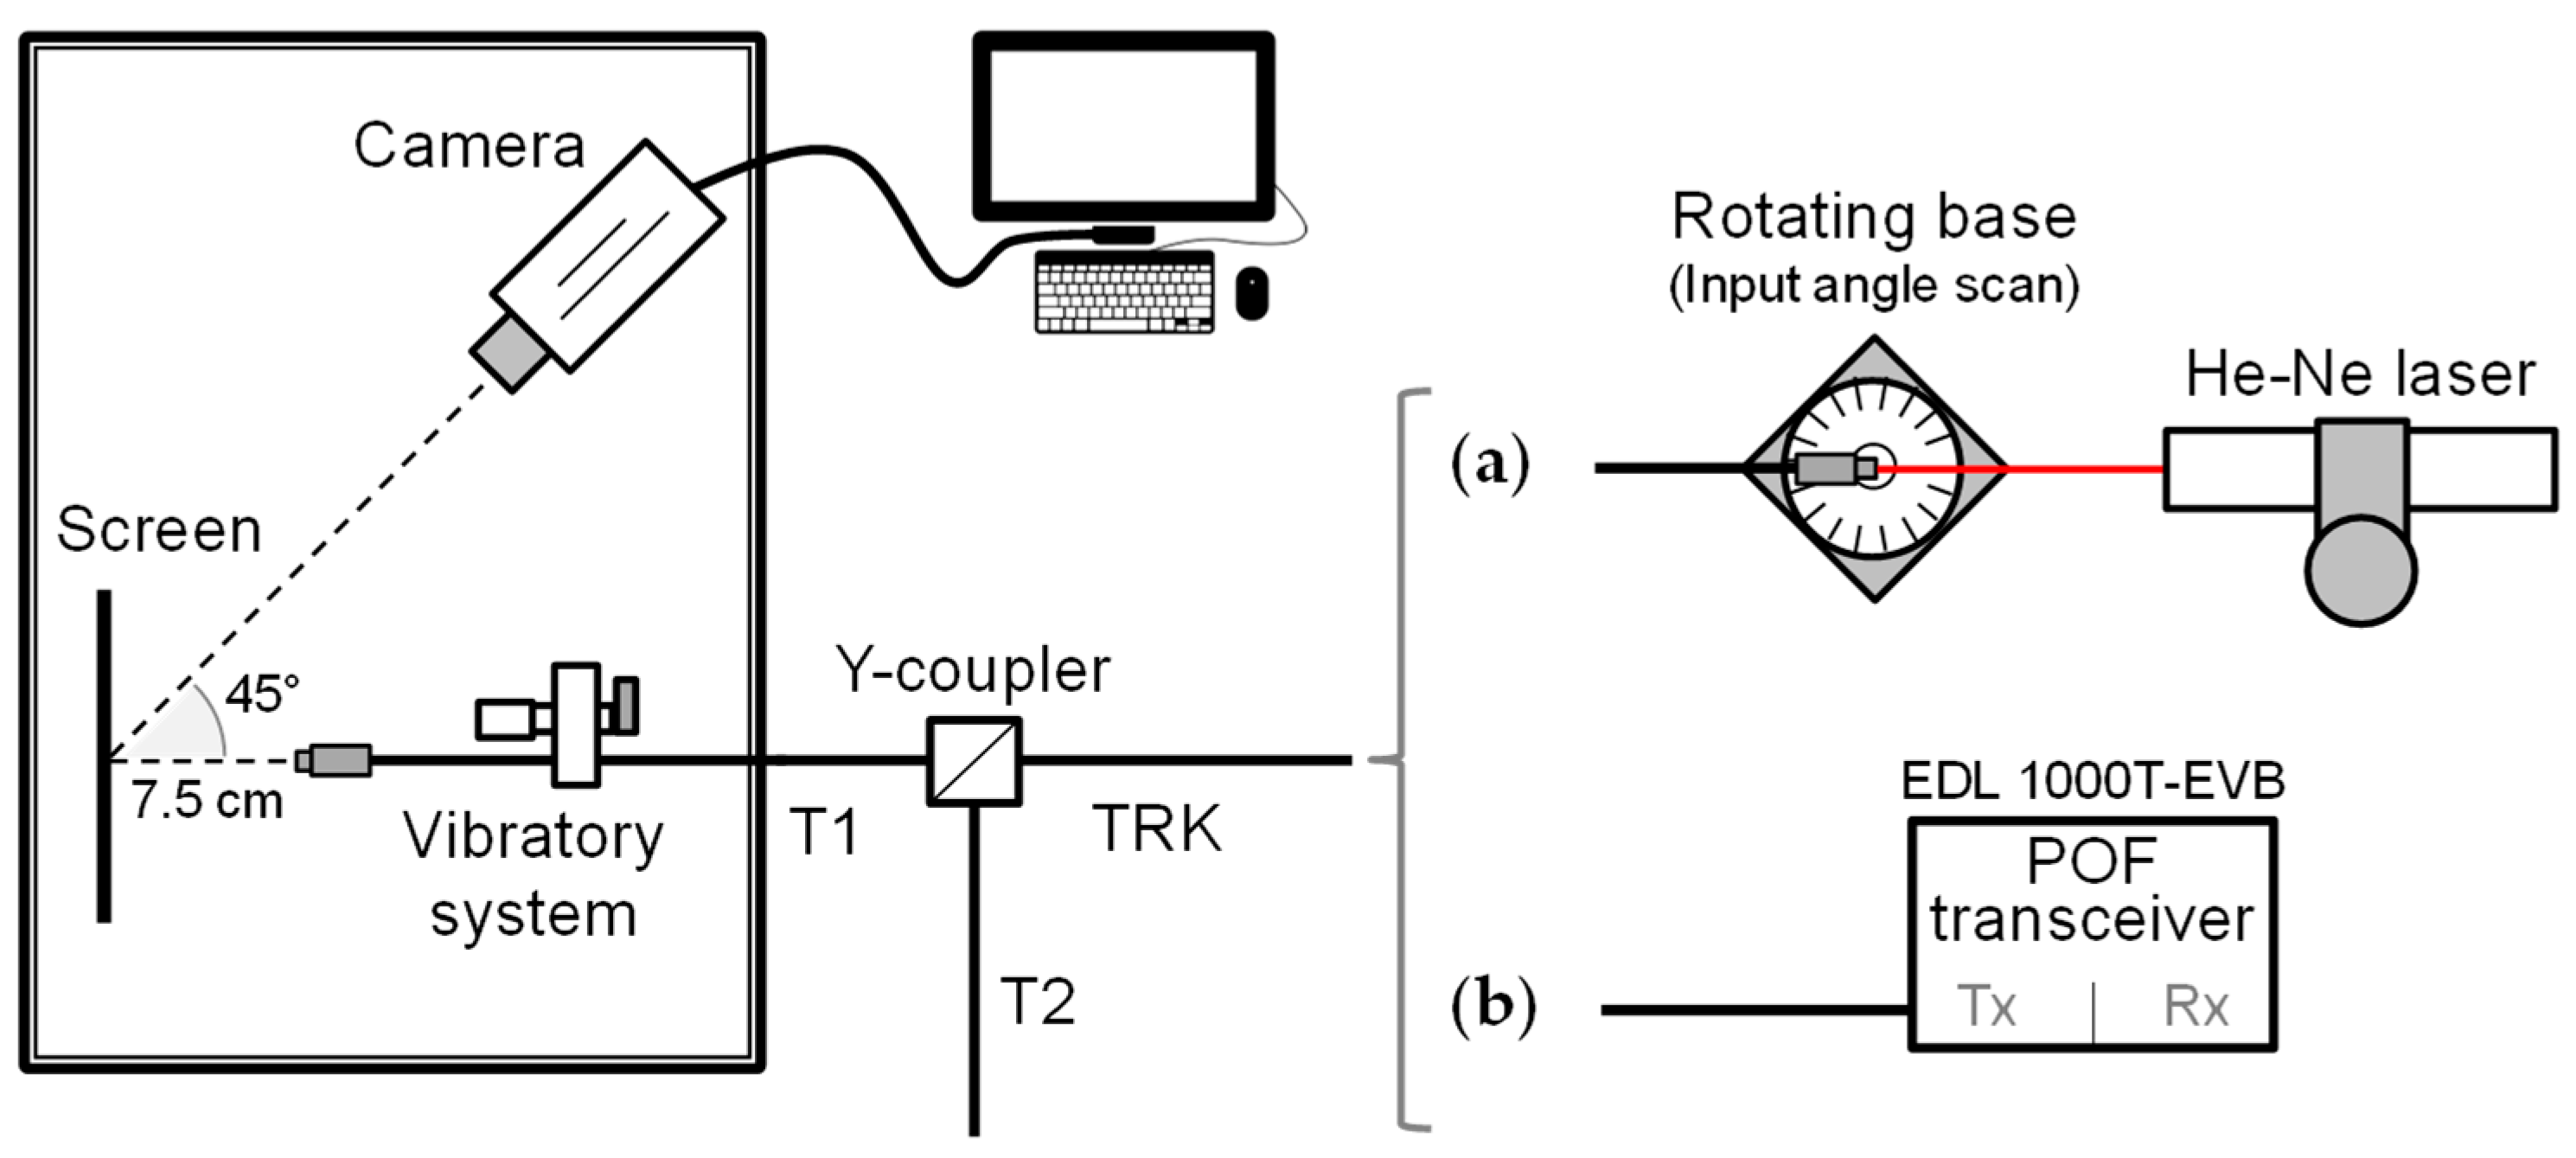 Fibers | Free Full-Text | Characterization of a Y-Coupler and Its